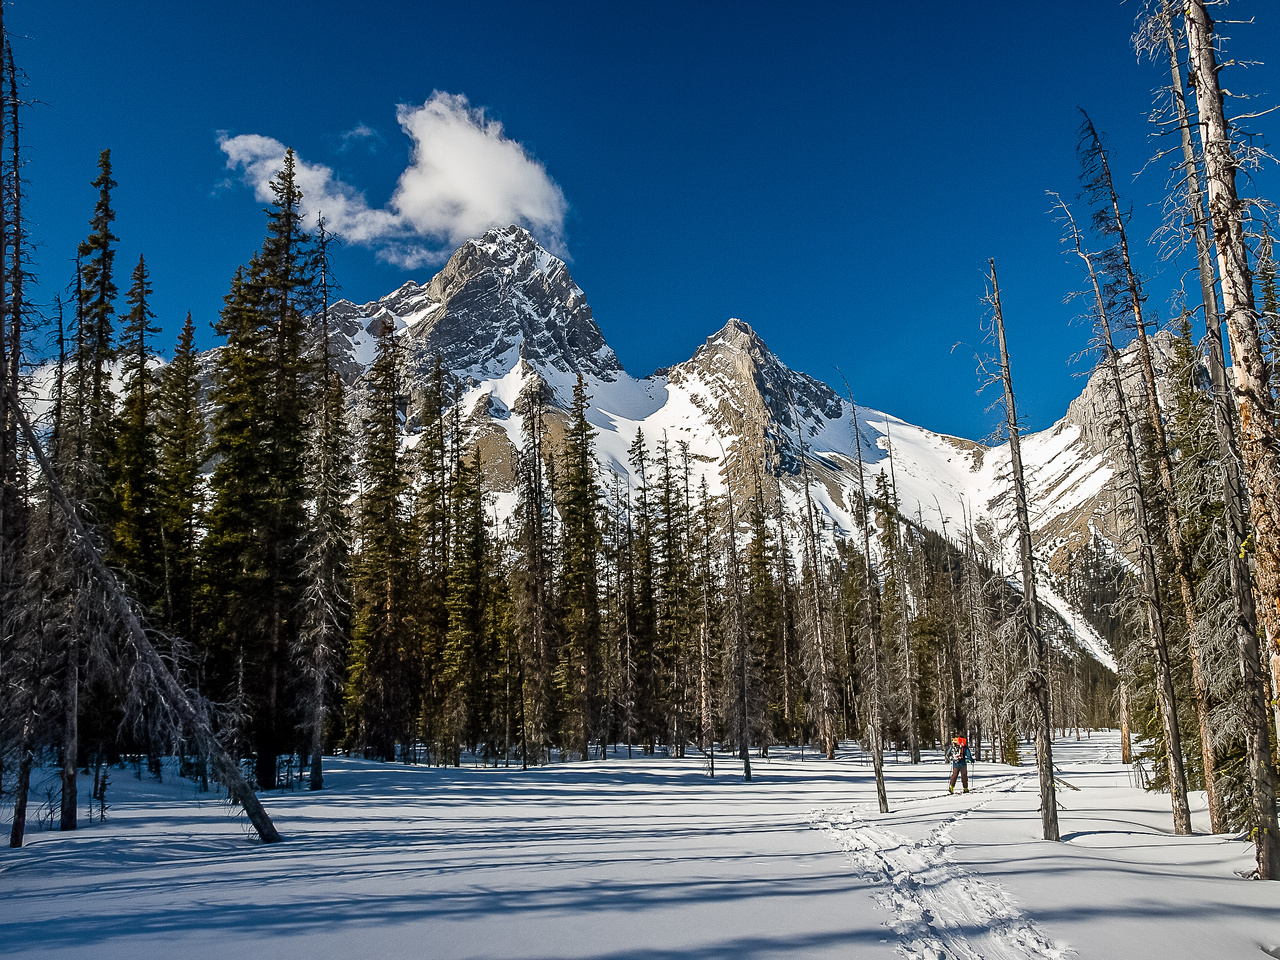 Skiing out of the Burstall flats.